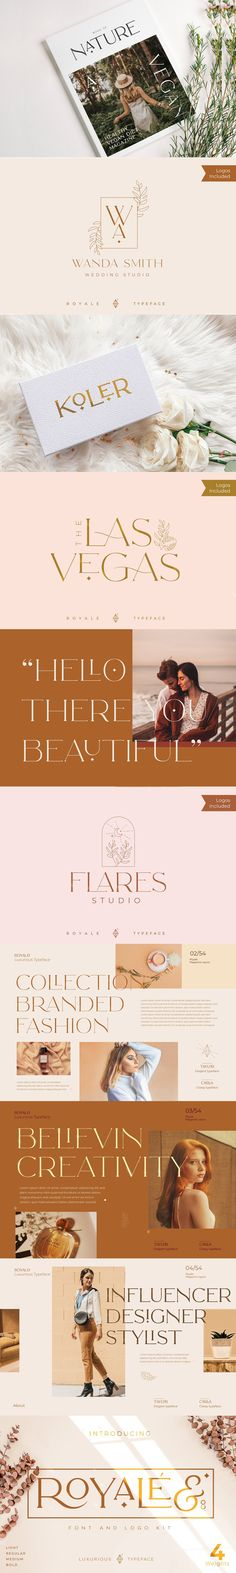 Introducing Royale Luxurious Typeface Royale Luxurious is a Minimalist Modern Elegant font with beautiful ligatures, tons of special alternative glyphs, Best Serif Fonts, Stylish Text, Text Overlay, Glyphs, Restaurant Design, Modern Minimalist, Background Images, Logo Design, Photoshop